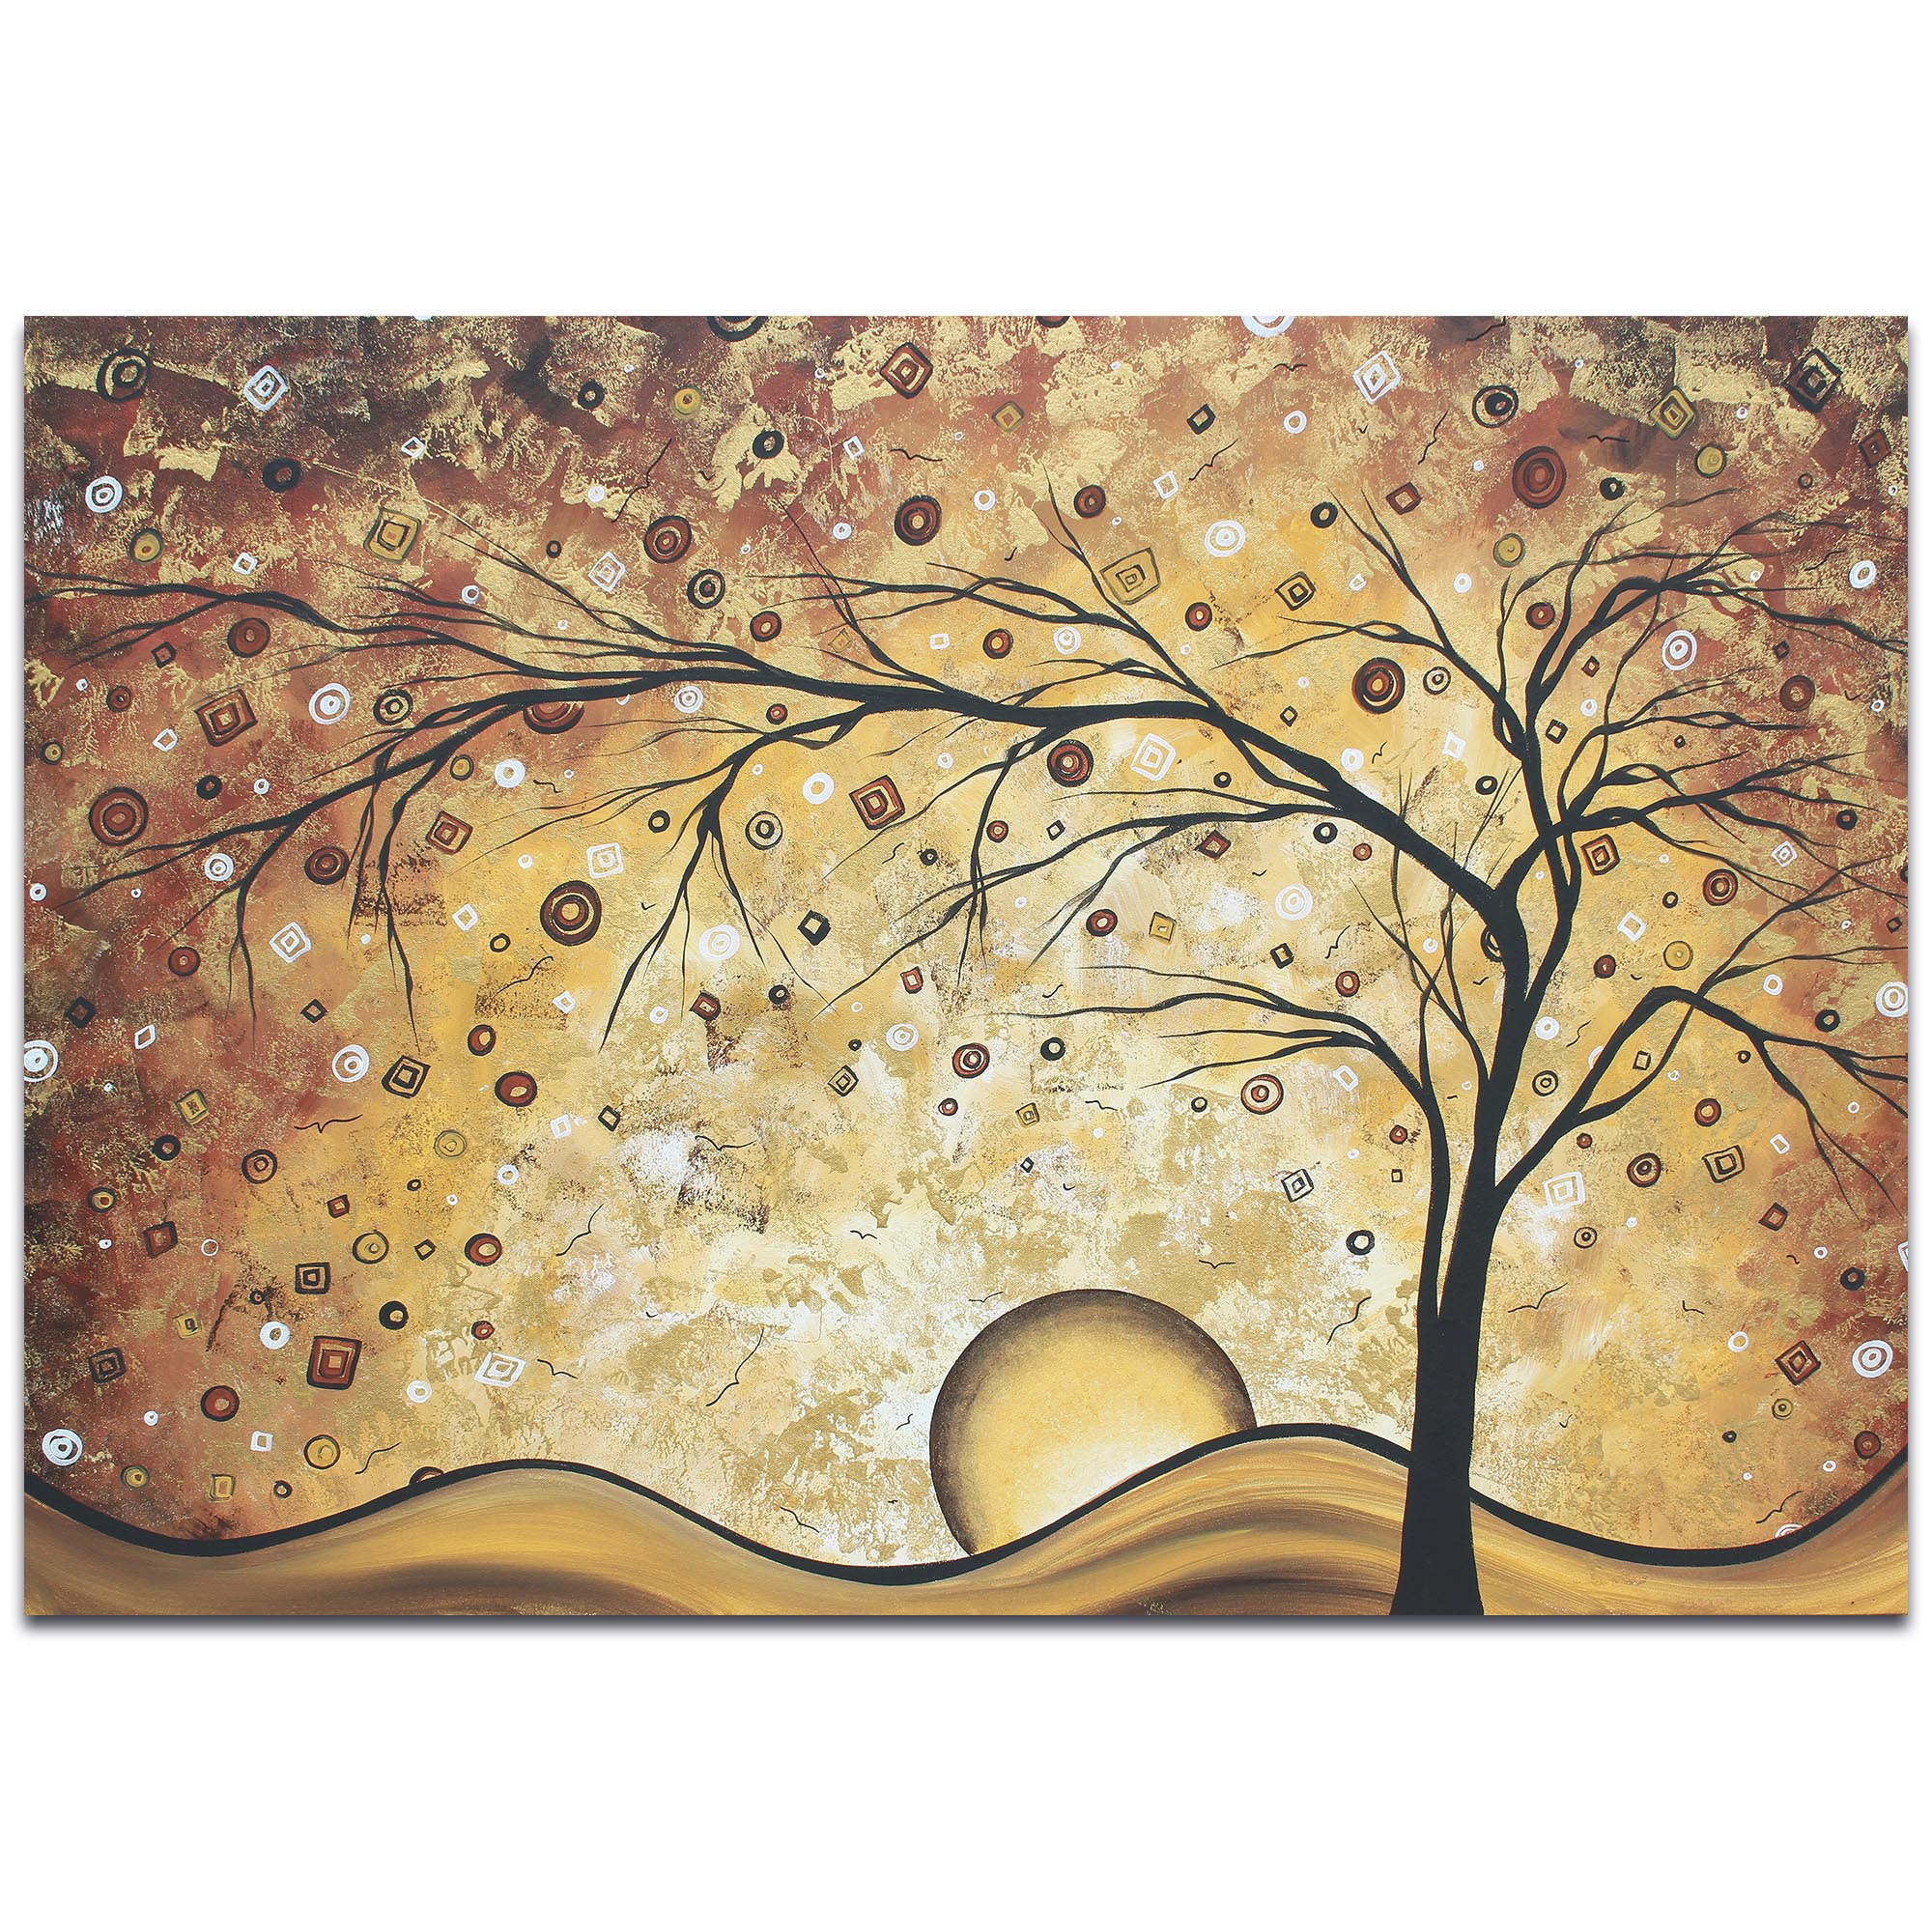 Landscape Painting 'Golden Rhapsody' - Abstract Tree Art on Metal or Acrylic